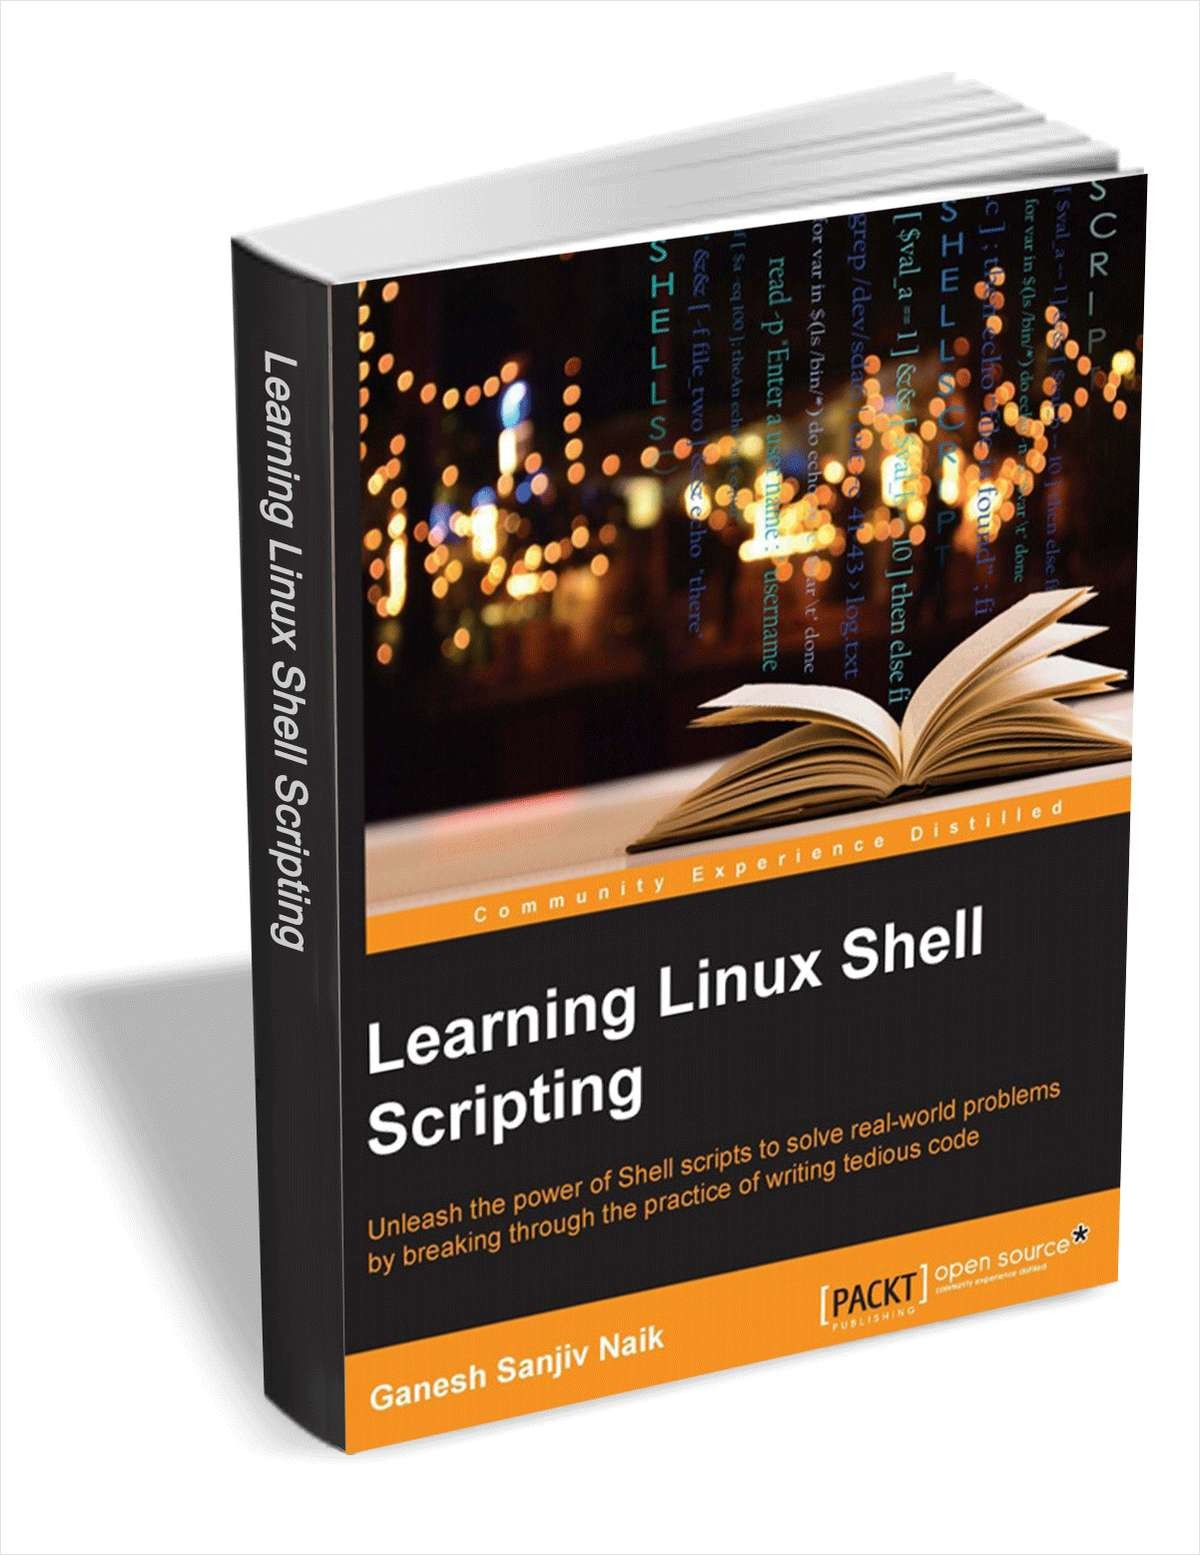 What is the best resource for learning Bash scripting? - Quora